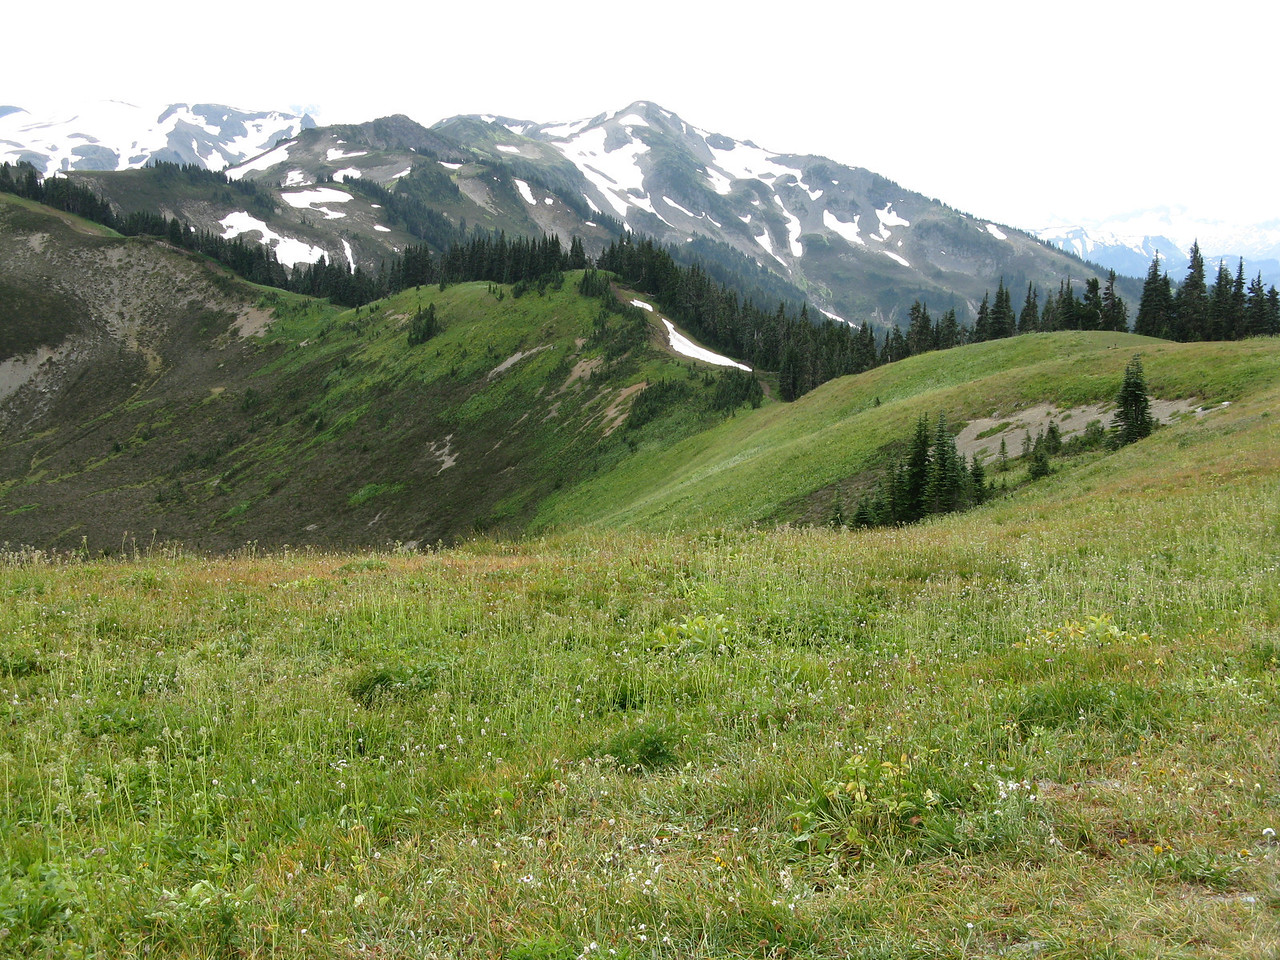 The trail extends on this ridge top to Skyline Peak.